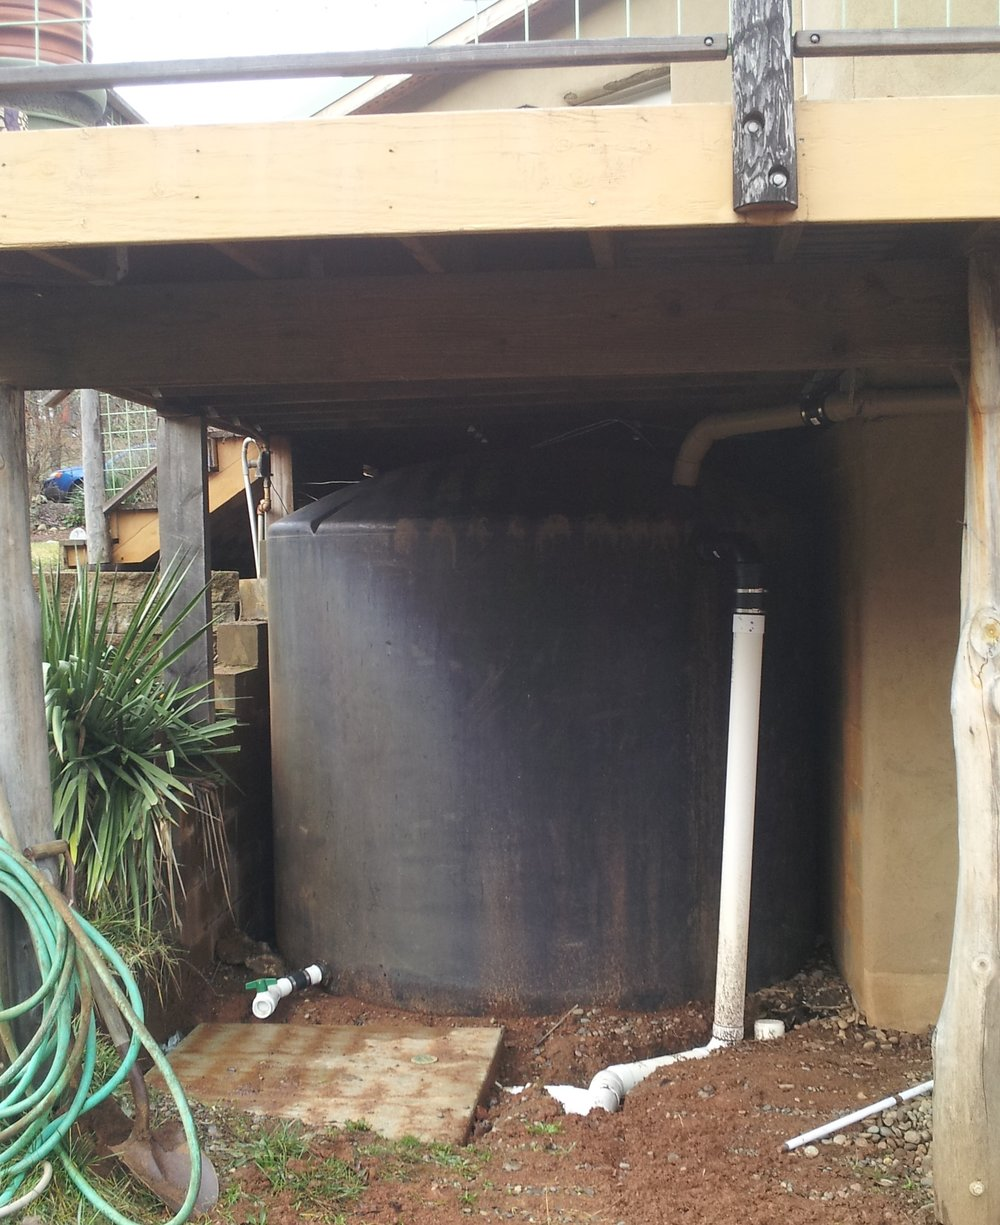 tanks located under deck protects from UV light degradation